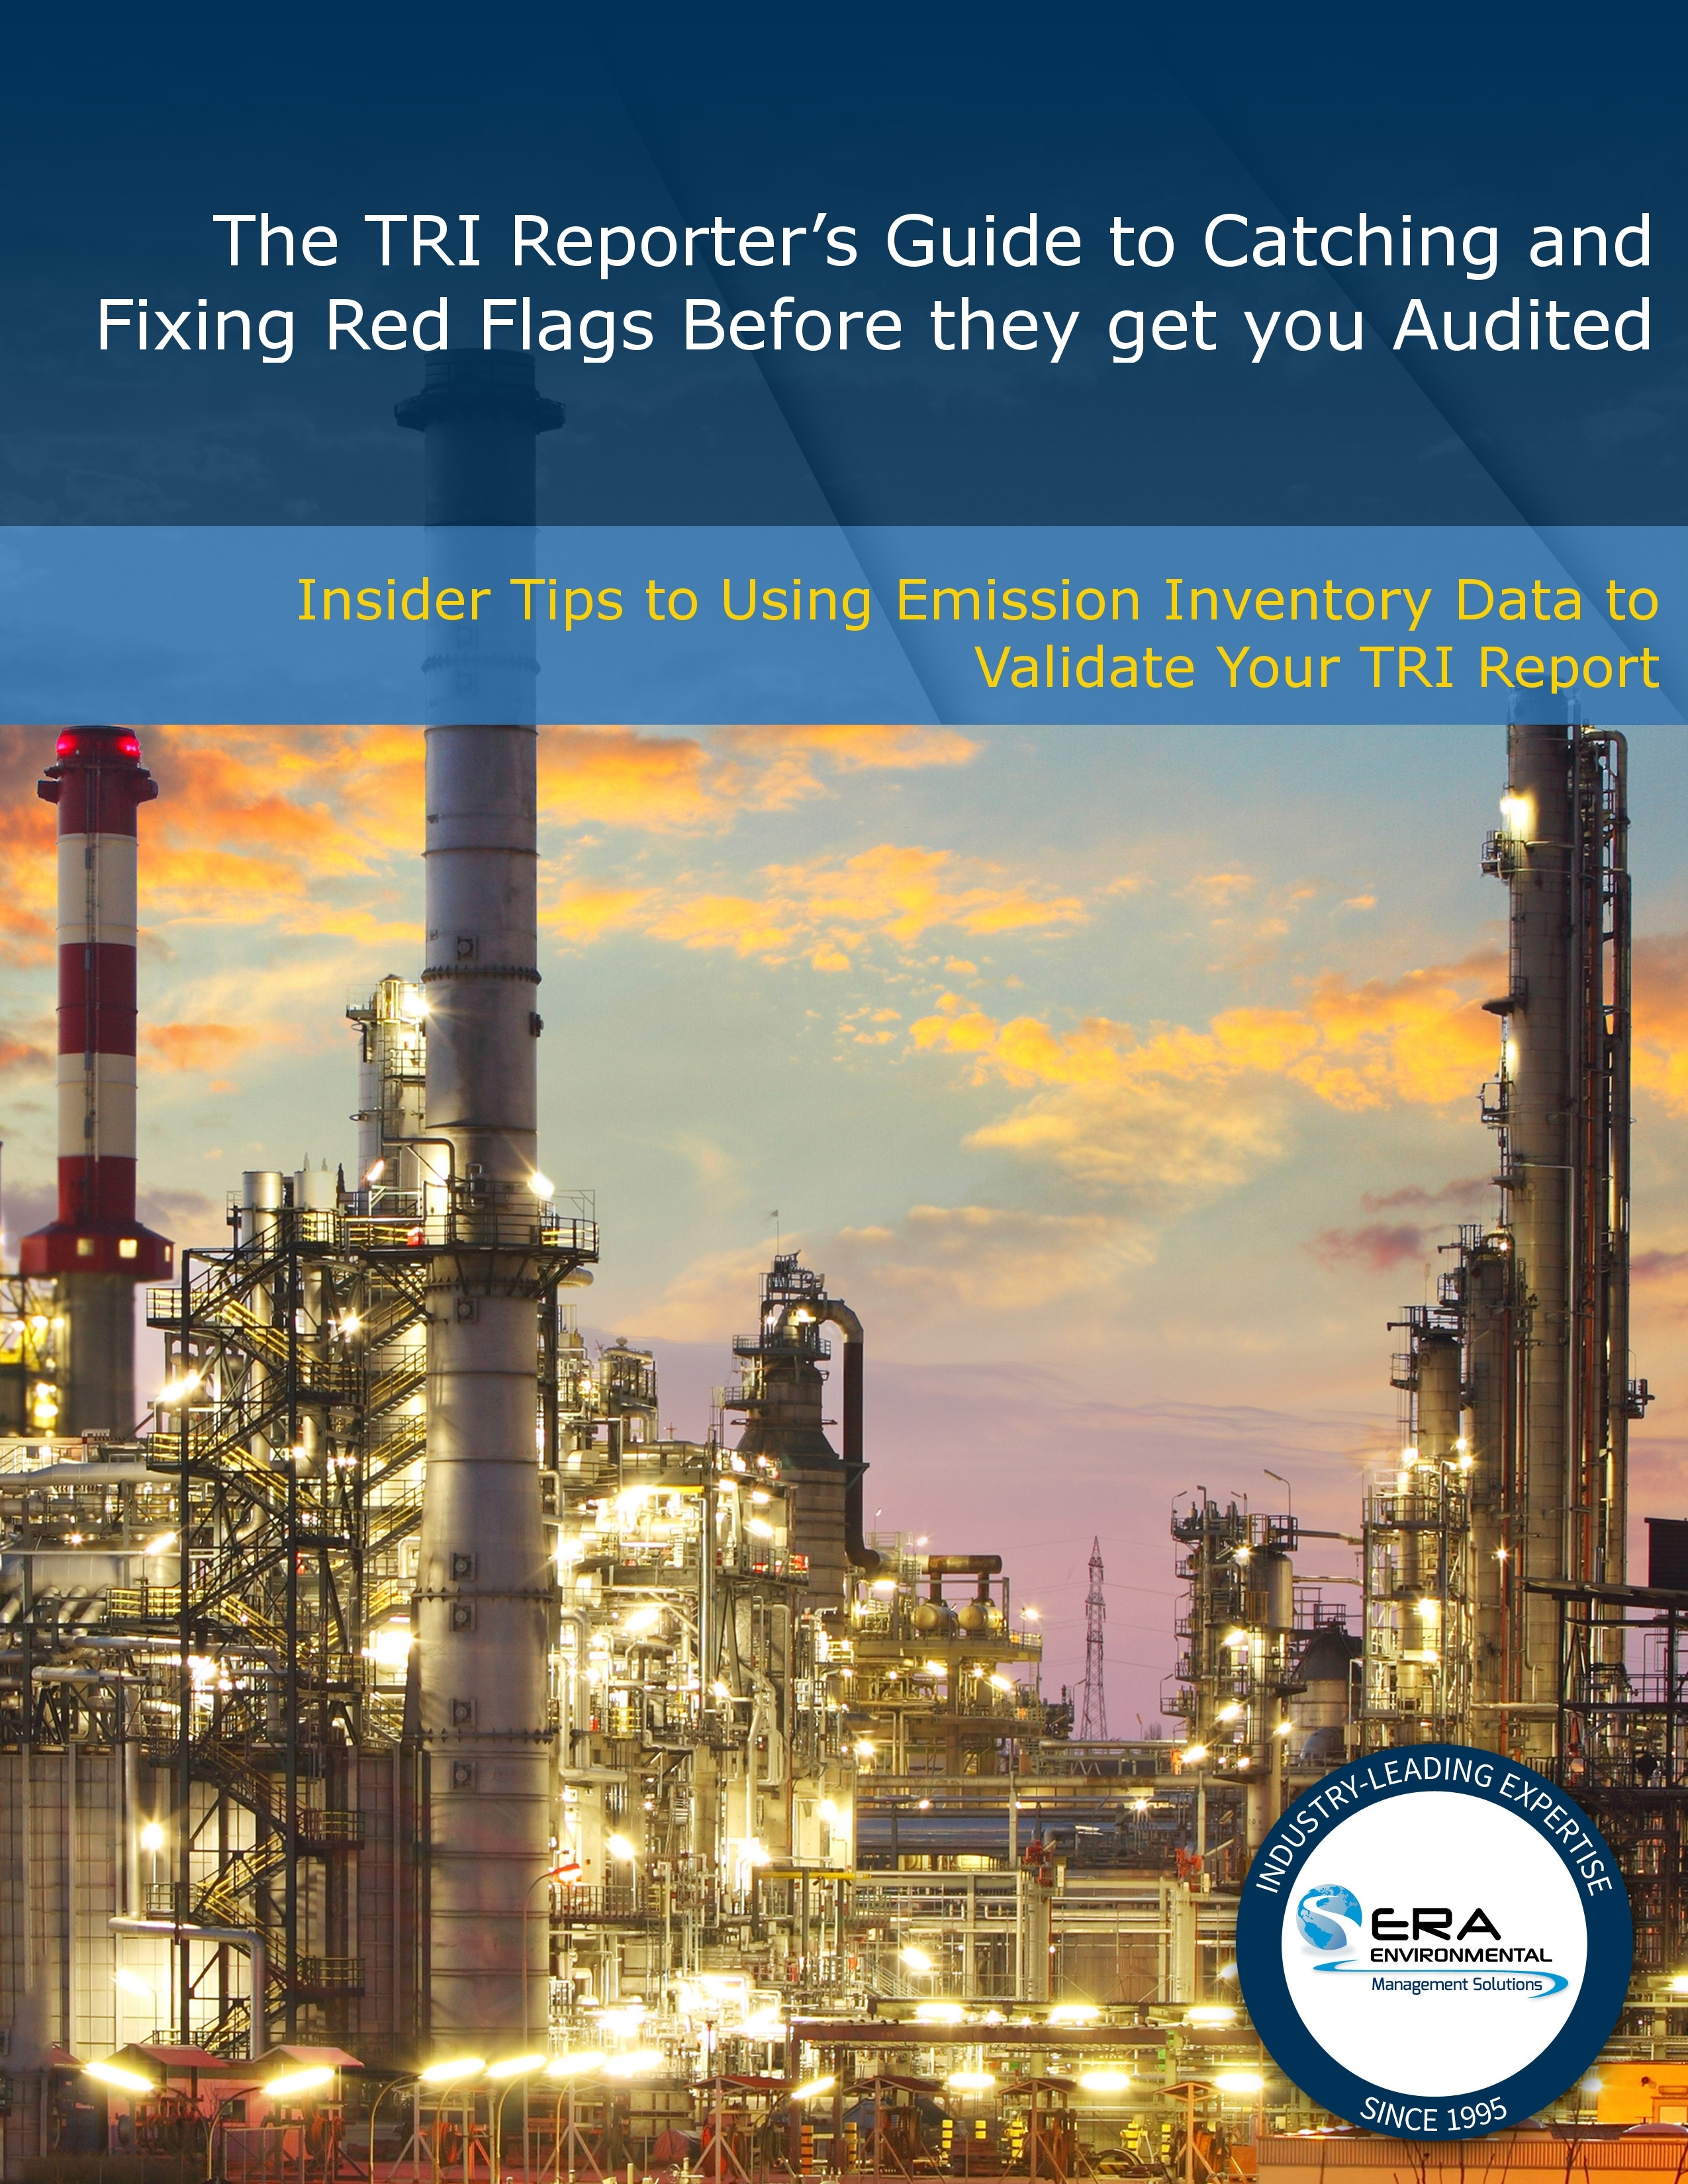 TRI Guide: Finding and Fixing EPA Red Flags